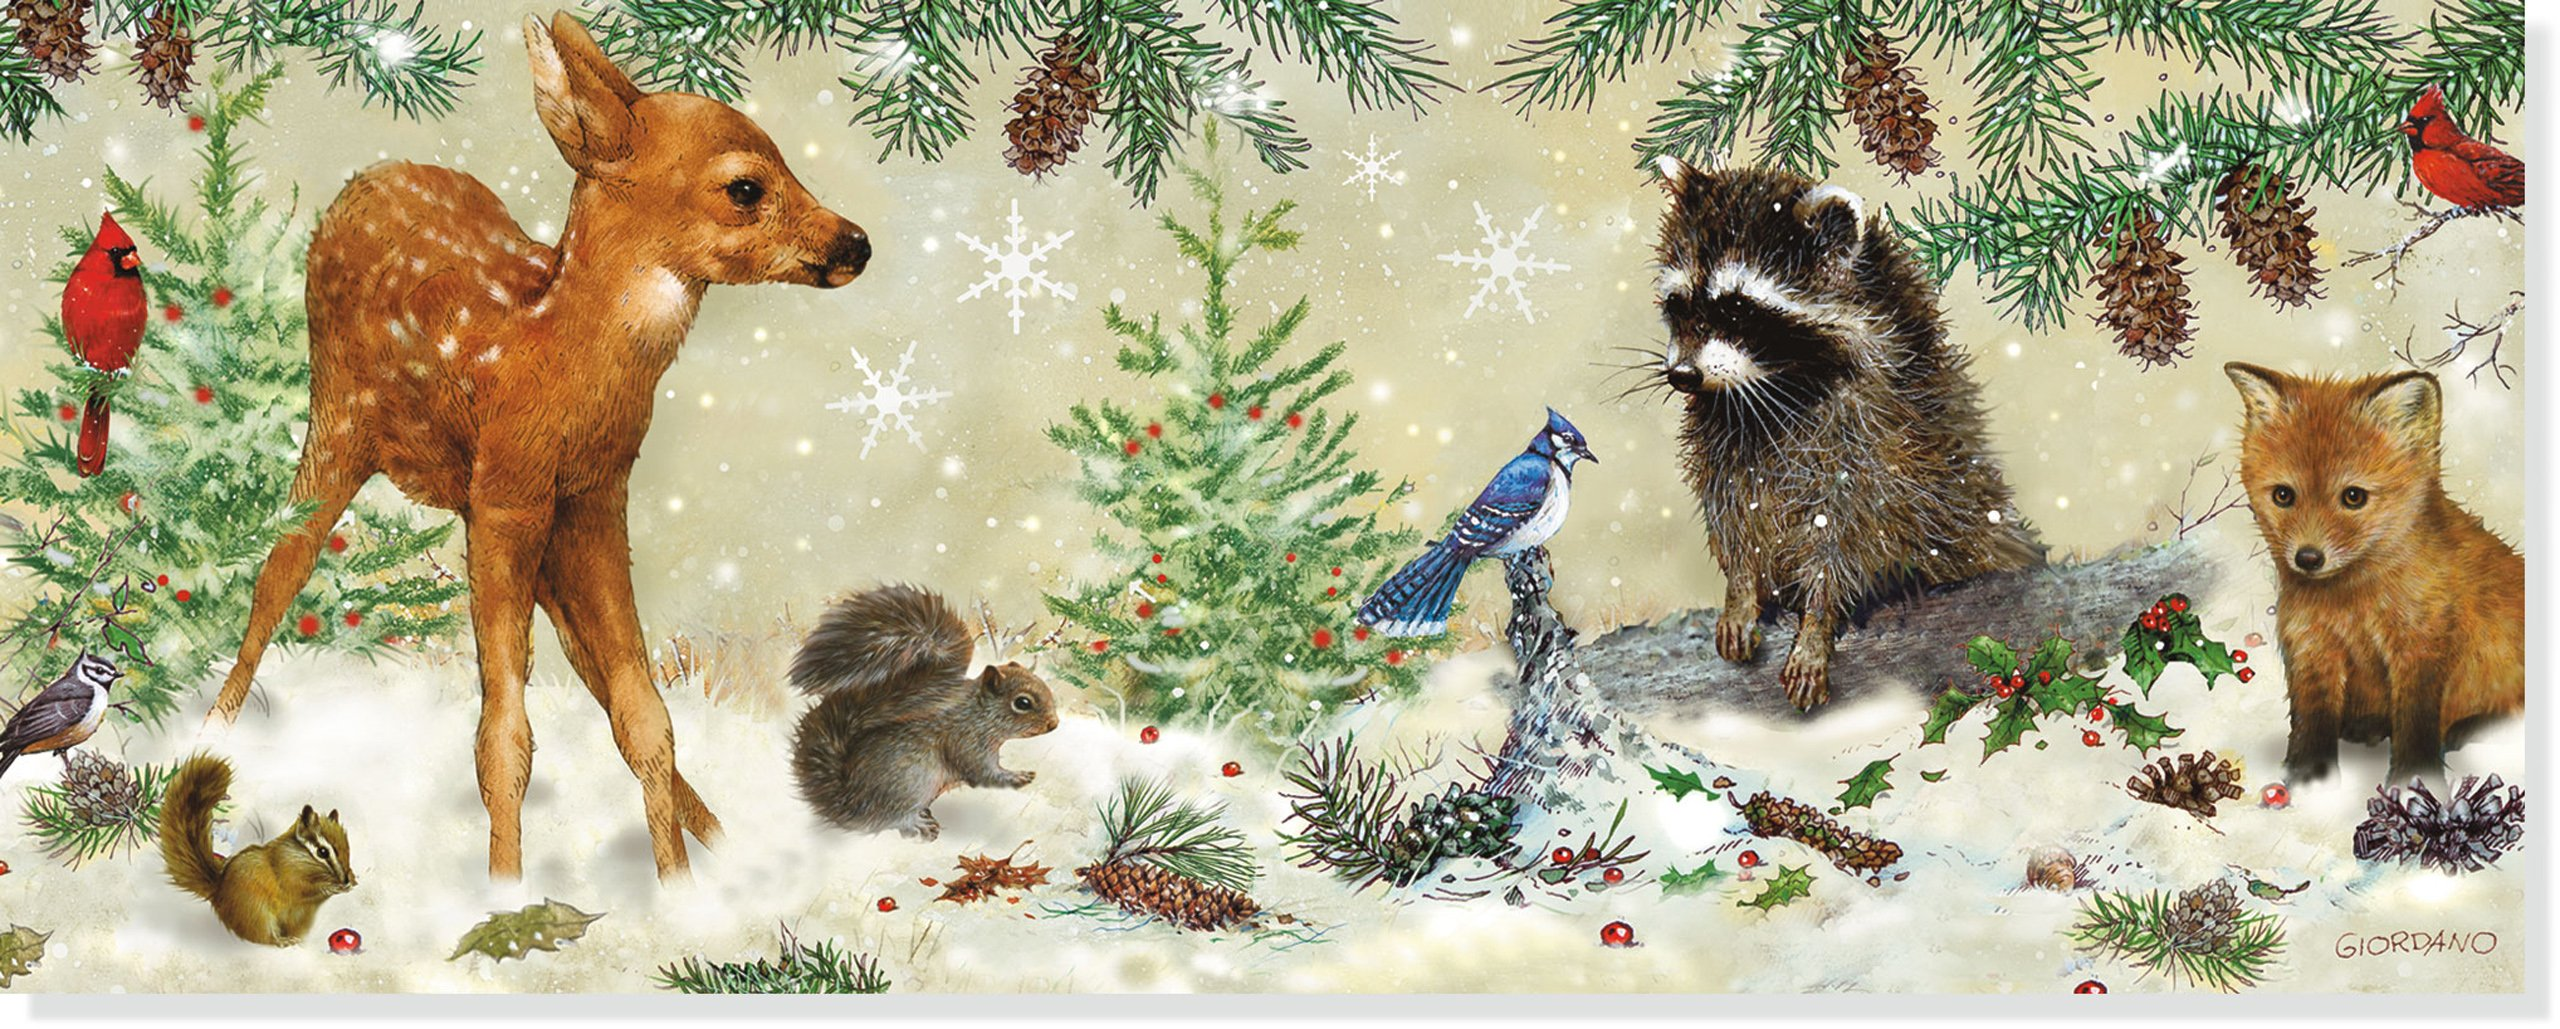 winter forest friends panoramic boxed holiday cards christmas cards holiday cards greeting cards inc peter pauper press 9781441305046 amazoncom - Animal Christmas Cards